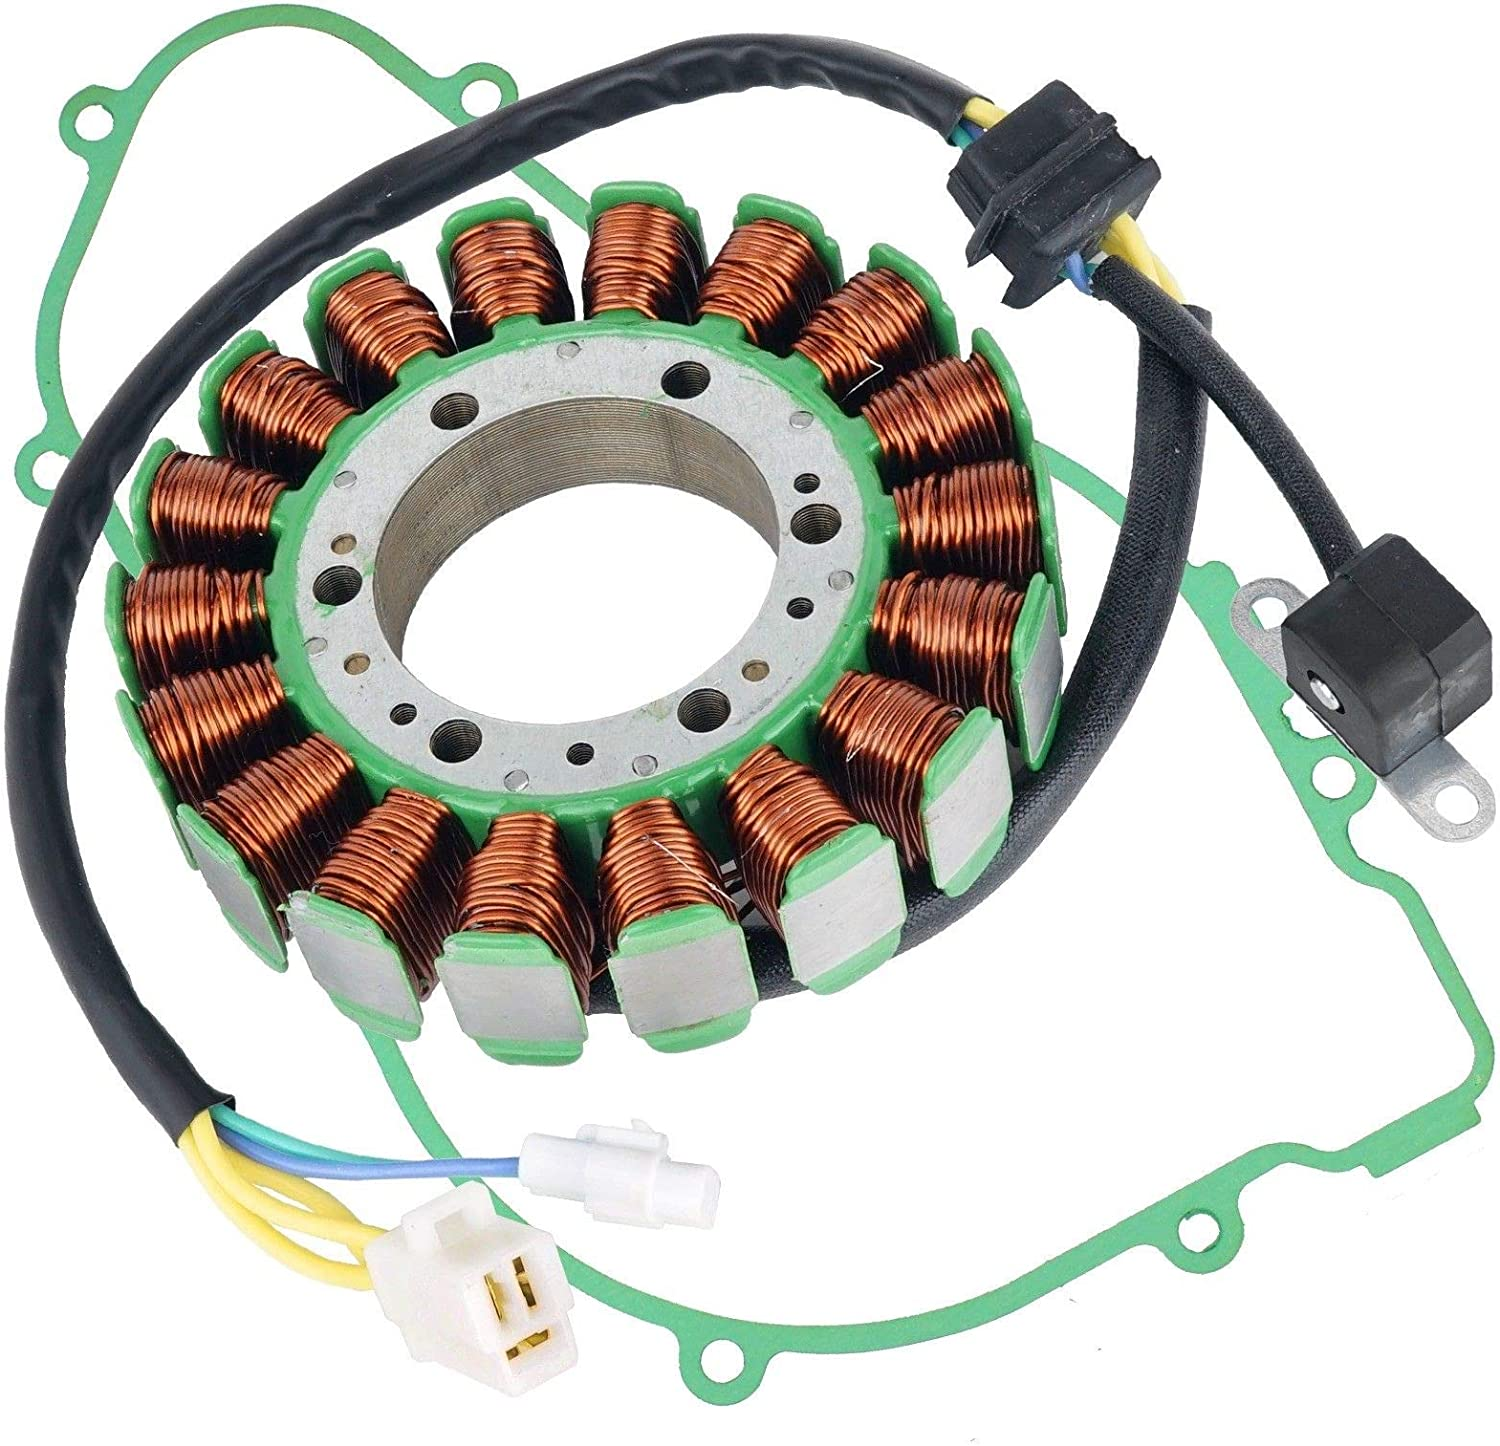 Caltric Stator And Gasket Special sale item Compatible Max 82% OFF with Arctic X Cat Wildcat 1